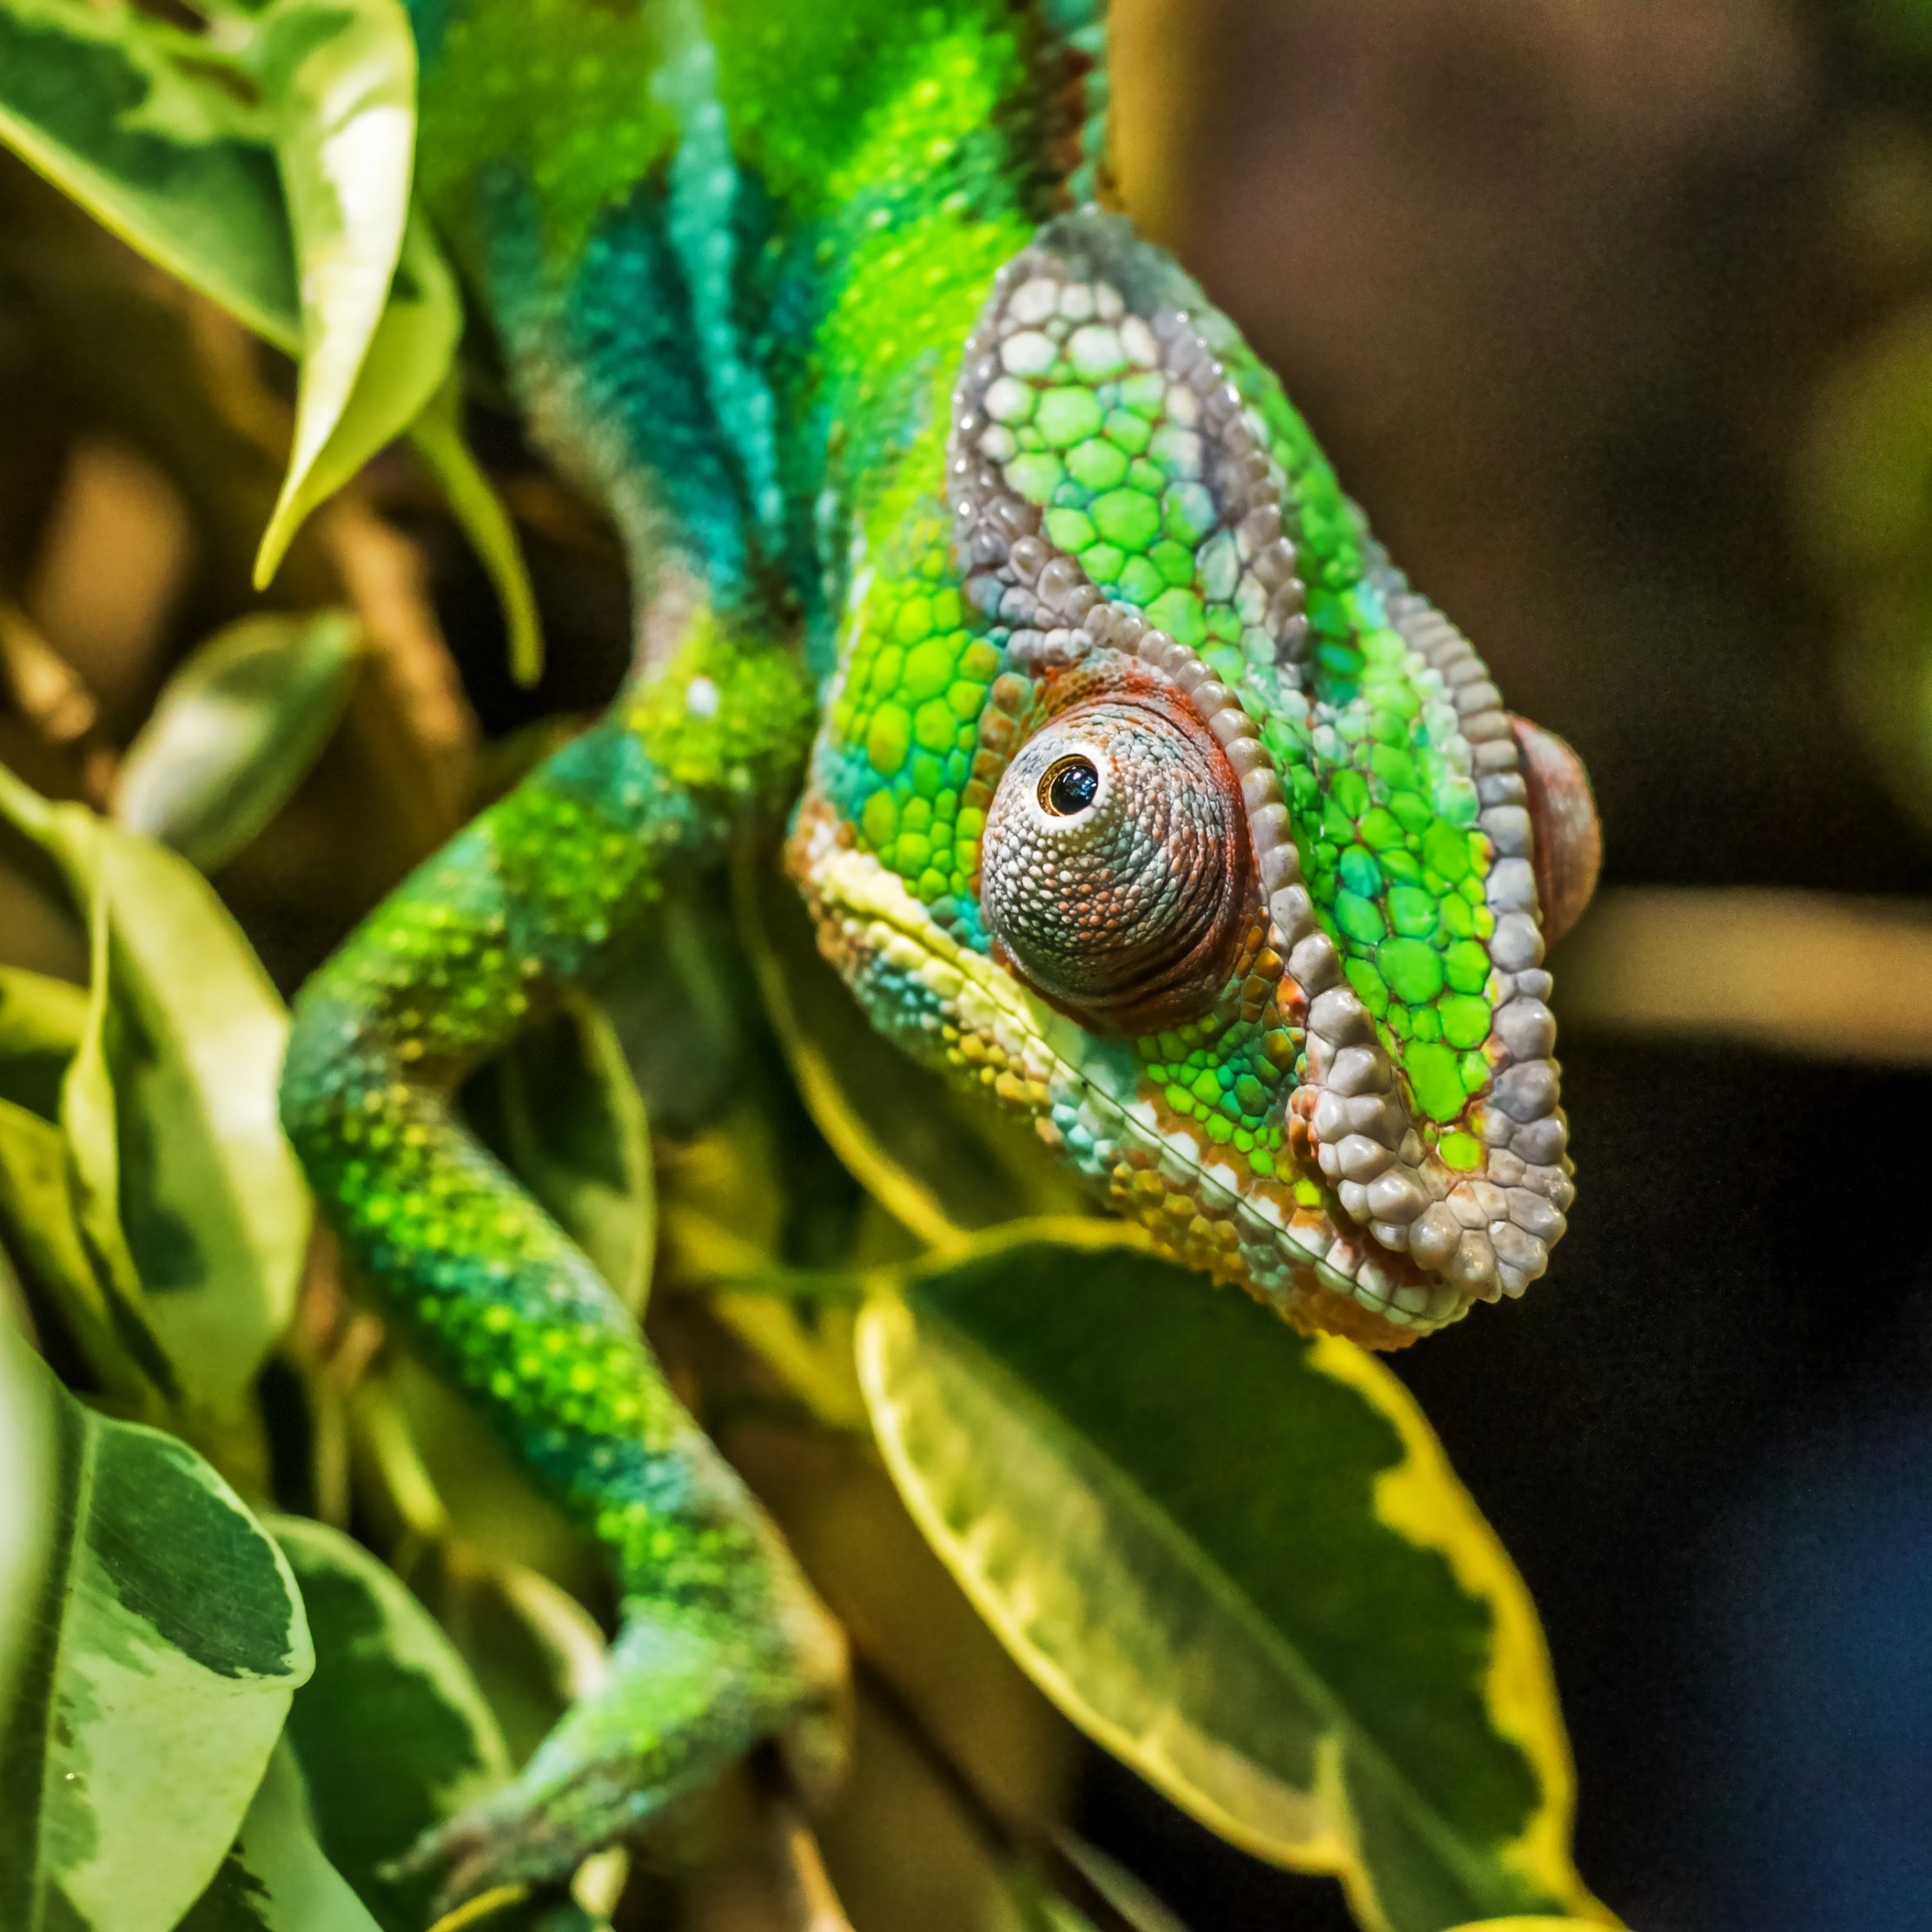 Panther chameleon reptile wallpaper 2224x2224